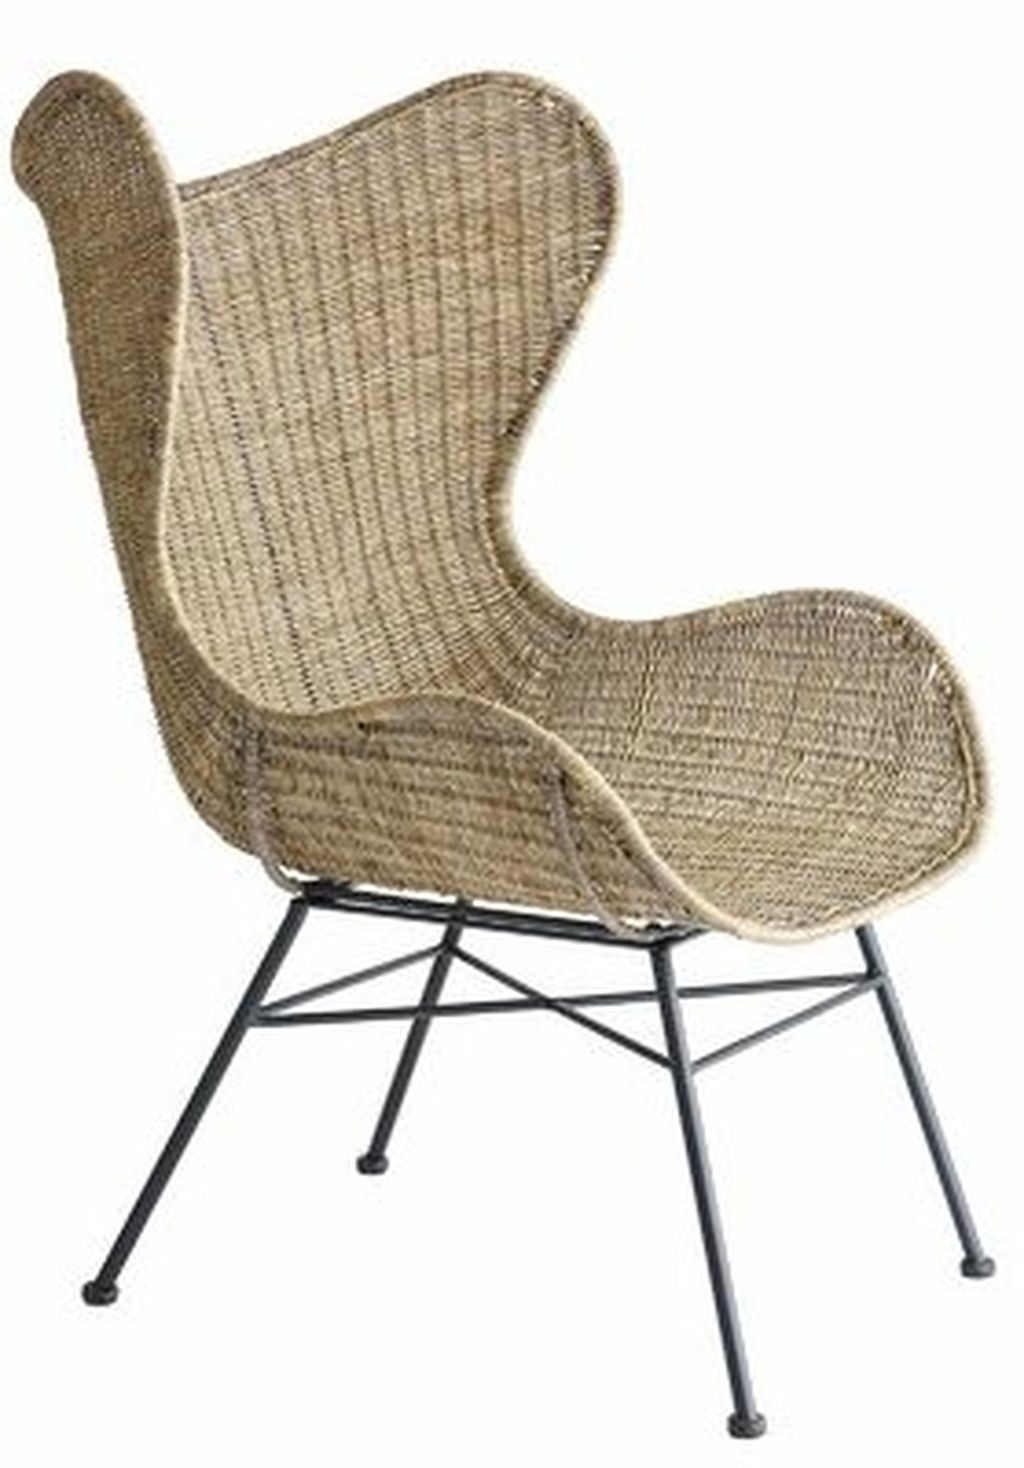 Cute Black Rattan Chairs Designs Ideas To Try This Year 13